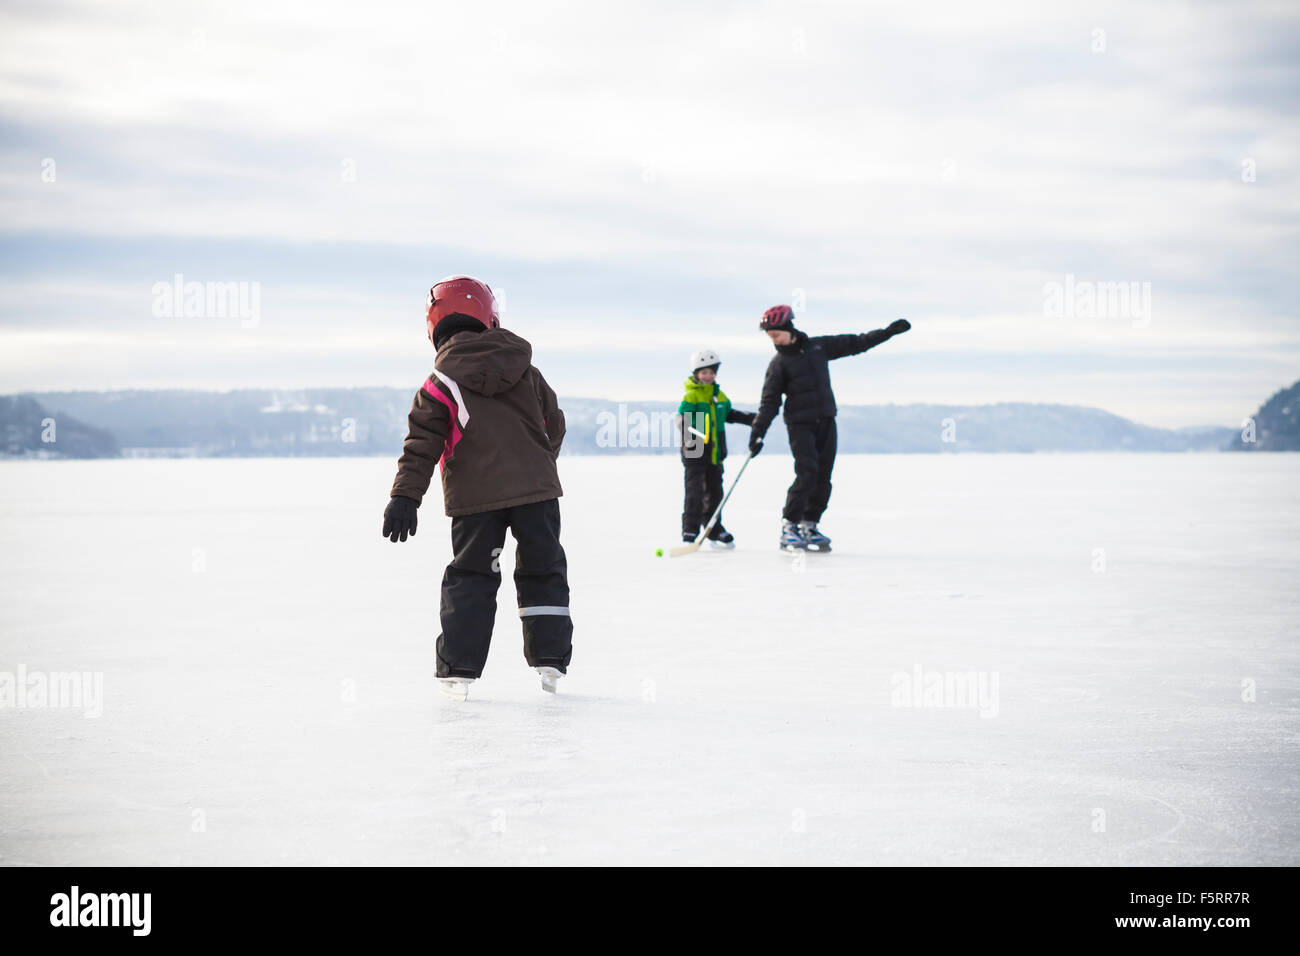 Sweden, Vastergotland, Lerum, Lake Aspen, Mom playing ice hockey with her two children (6-7, 8-9) on lake - Stock Image